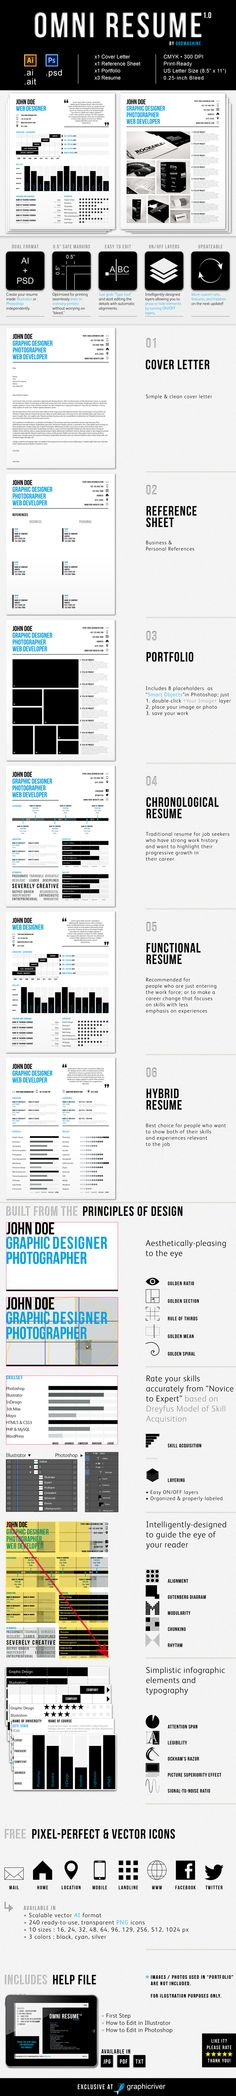 28 amazing examples of cool and creative resumes cv illustrators